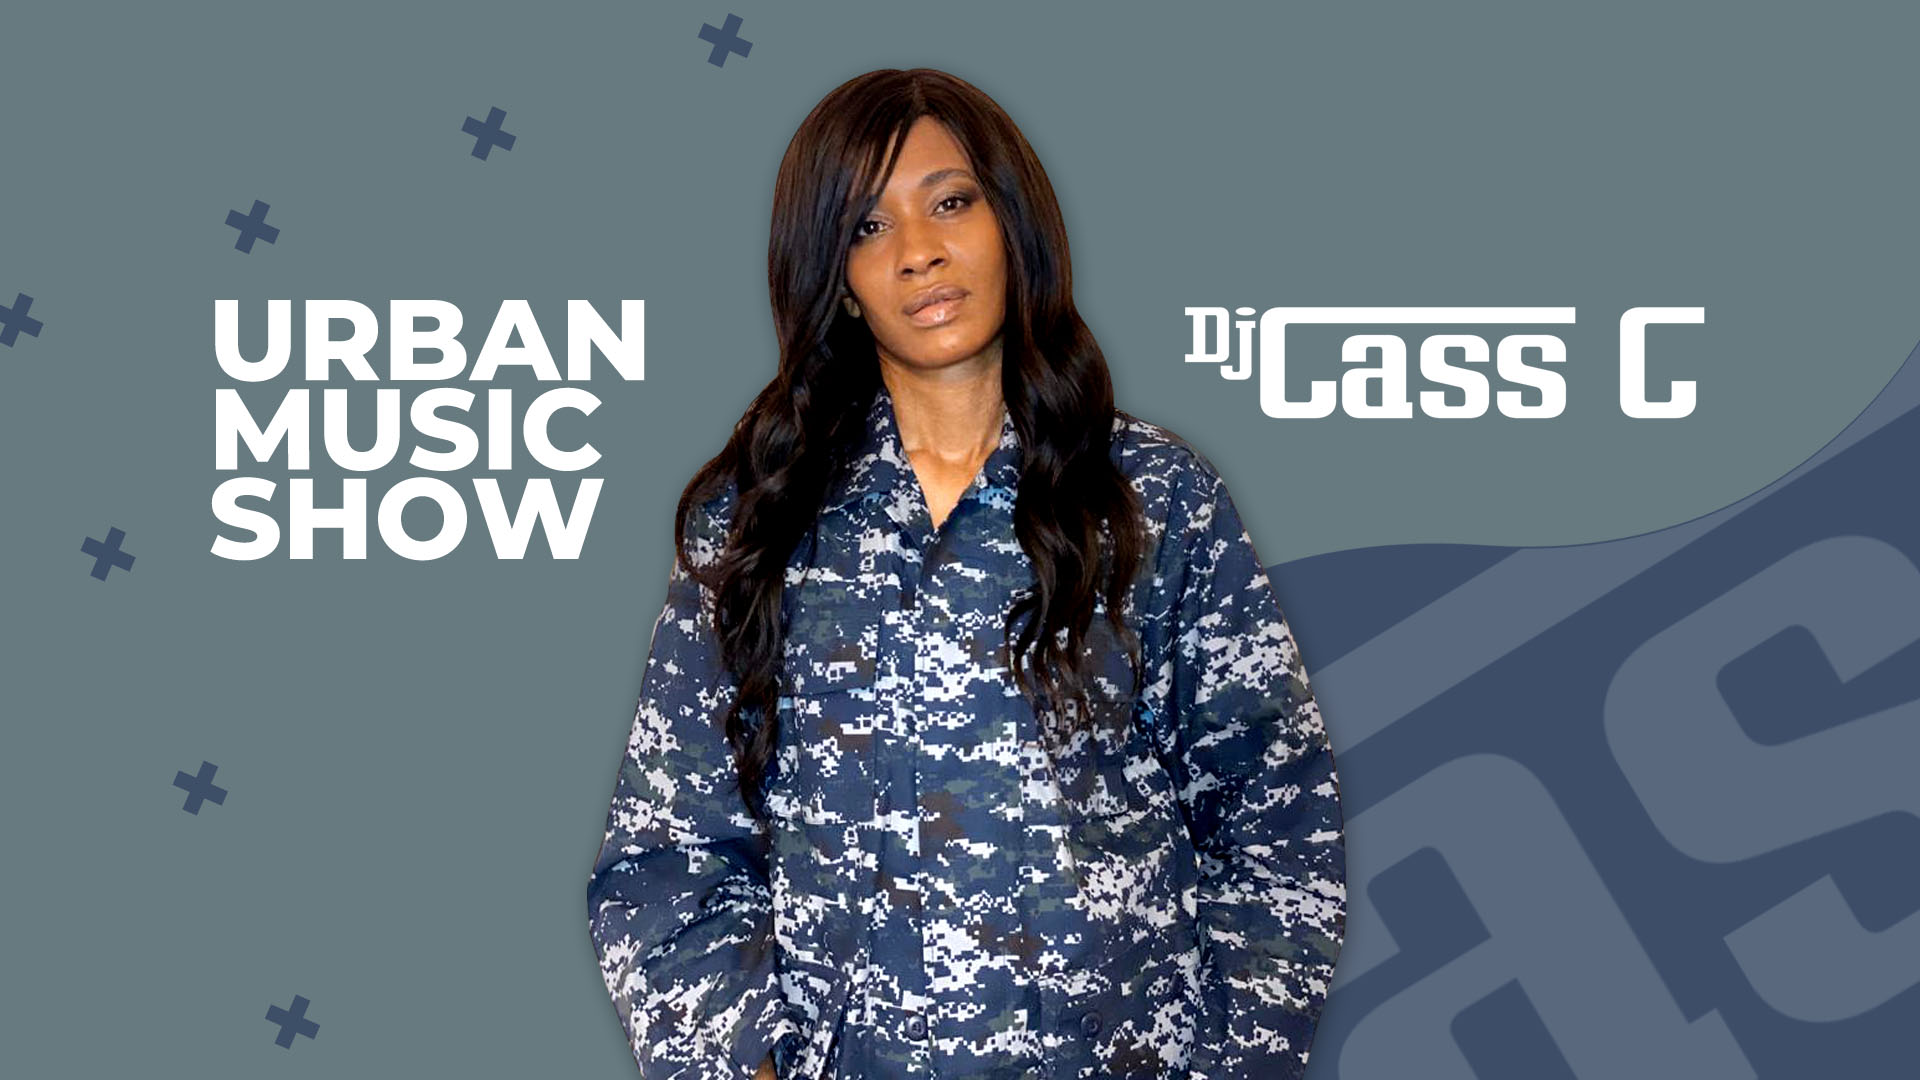 DJ CASS C – URBAN MUSIC SHOW – [22/6/20] (MUSIC FROM FAITH CHILD, ANDY MINEO, GUVNA B + MORE)